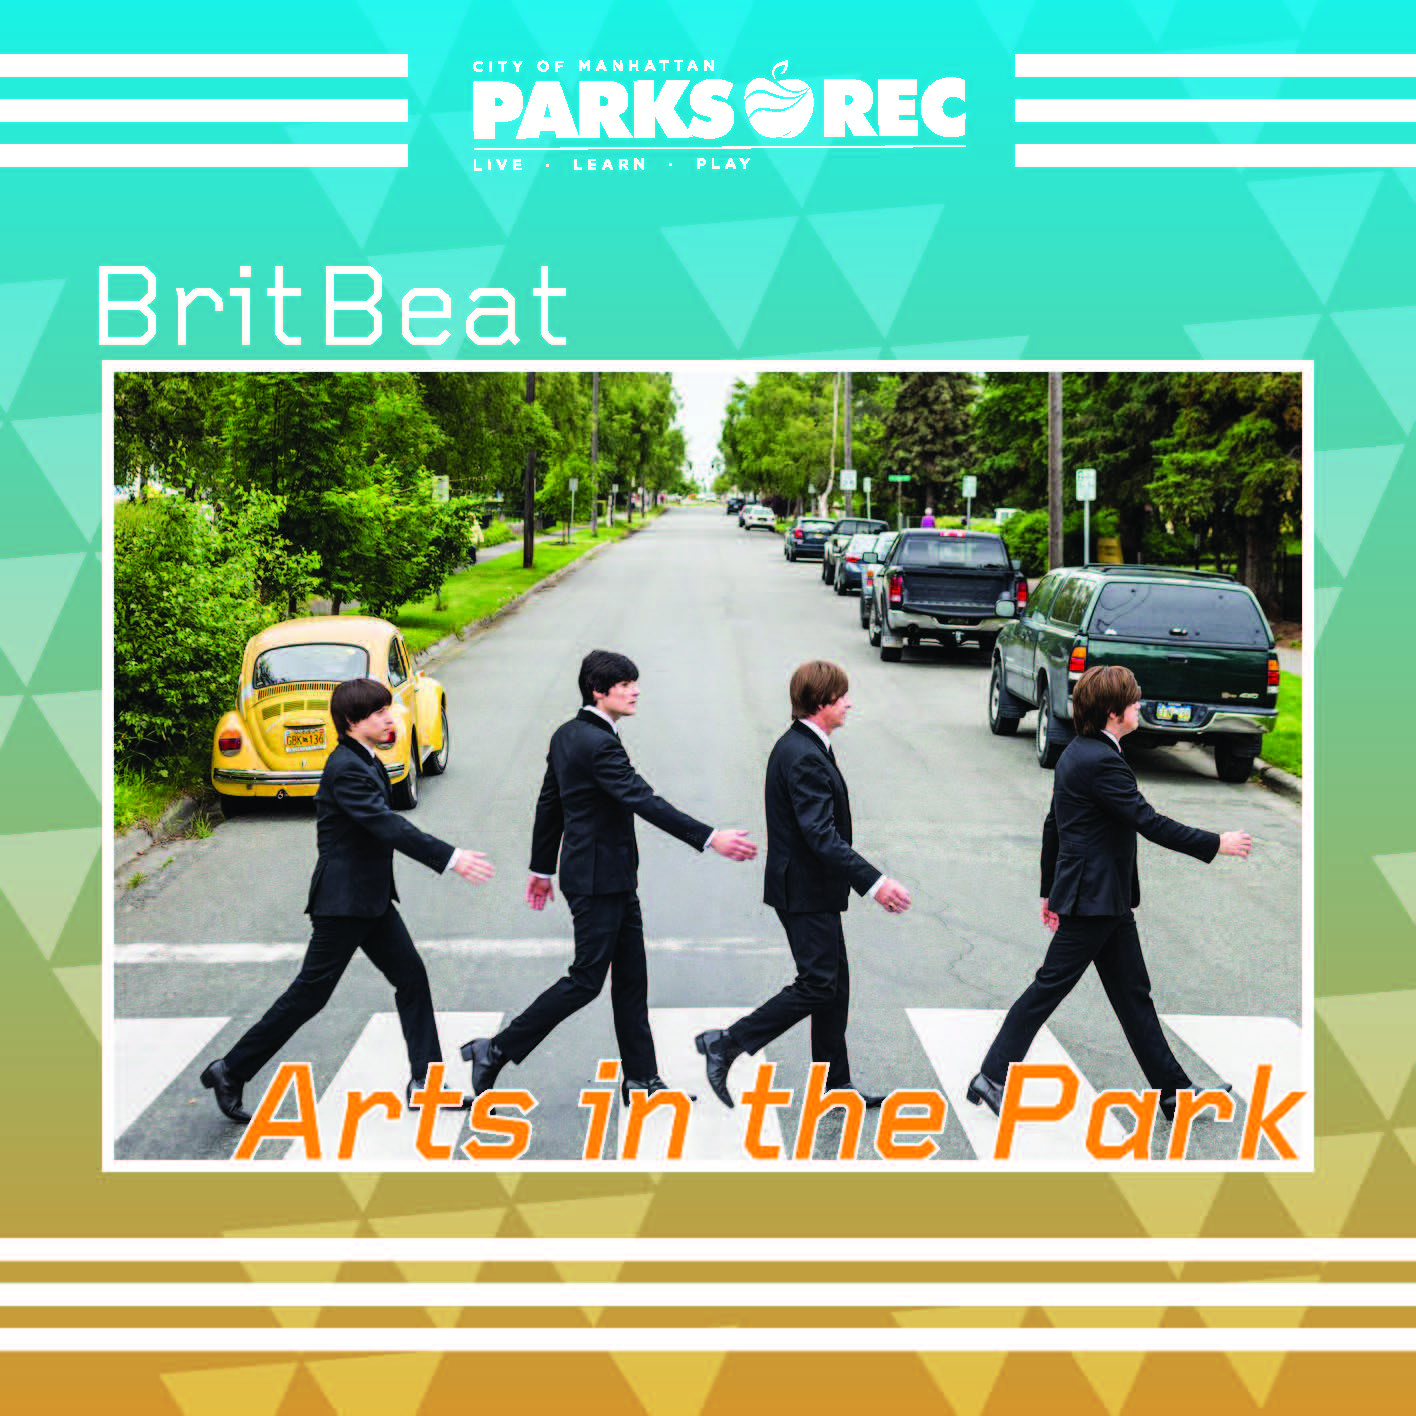 Arts in the Park SocialGraphics2017_Page_9.jpg